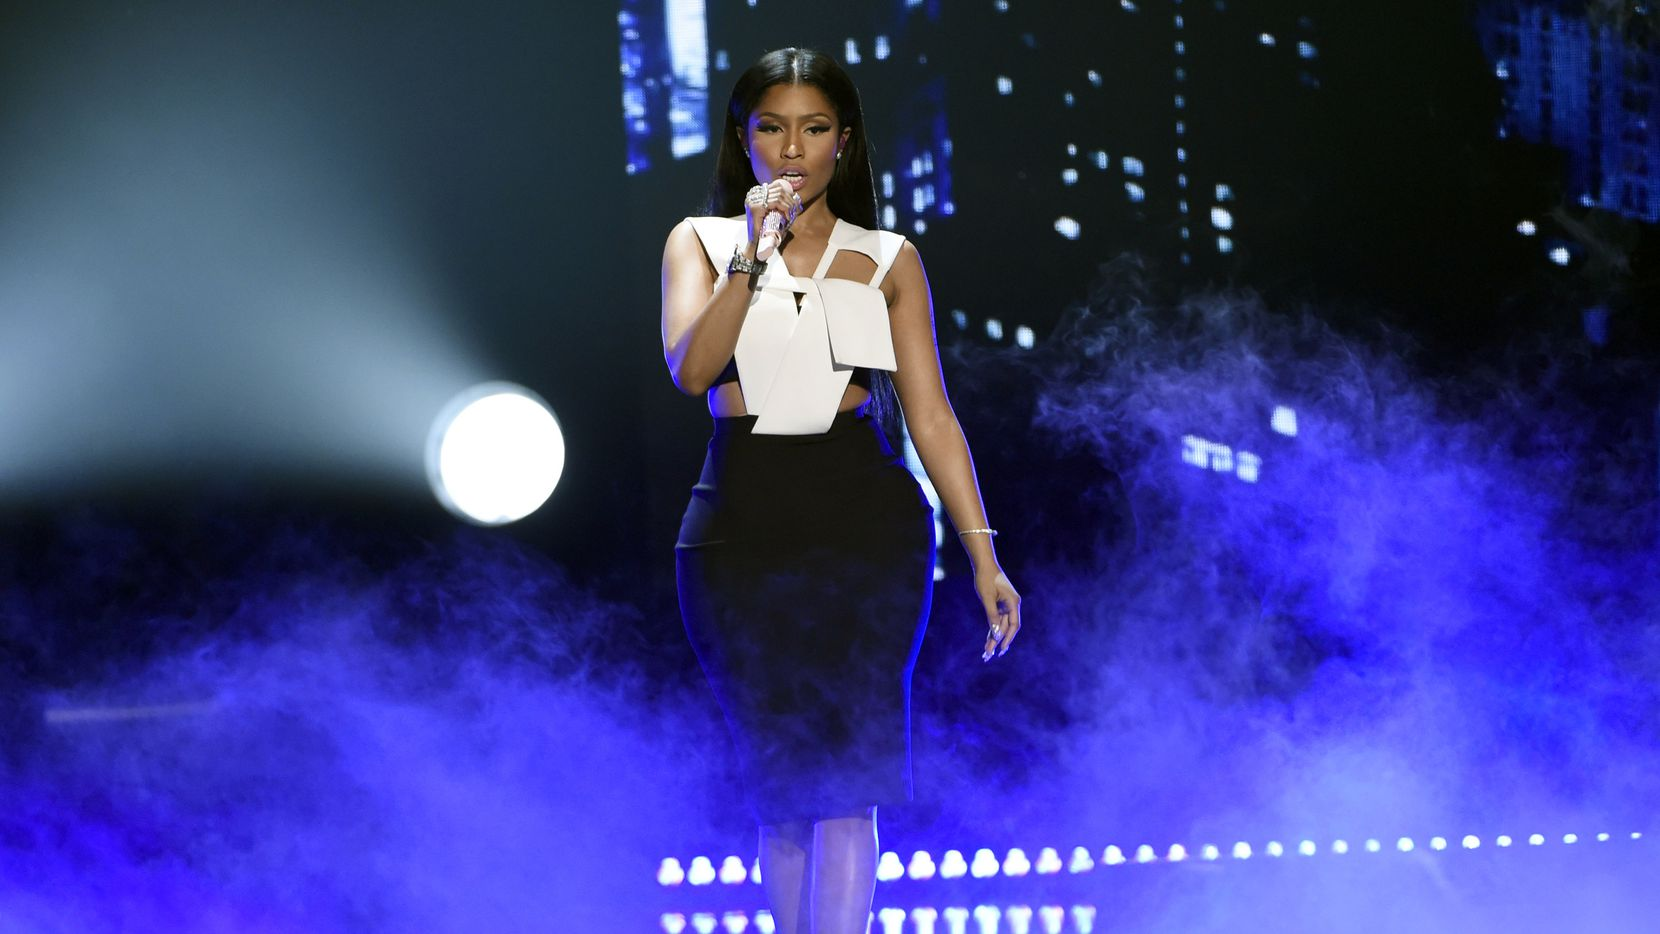 File photo: Nicki Minaj performed at the BET Awards last month in Los Angeles.